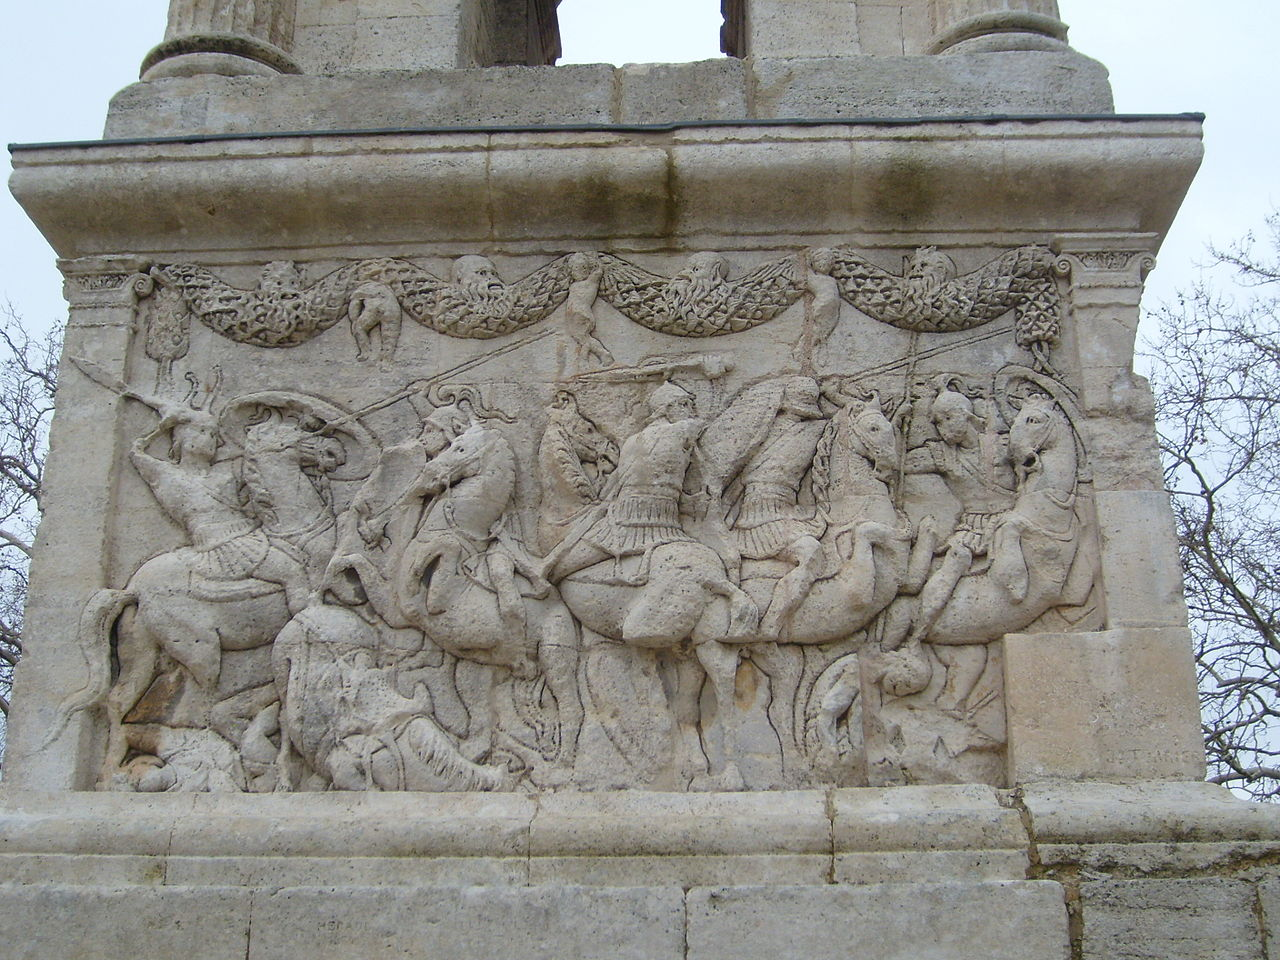 North face relief, mausoleum of the Julii, cr. 40 BC, Glanum, part of Roman Republic (now Saint-Rémy de Provence, France)